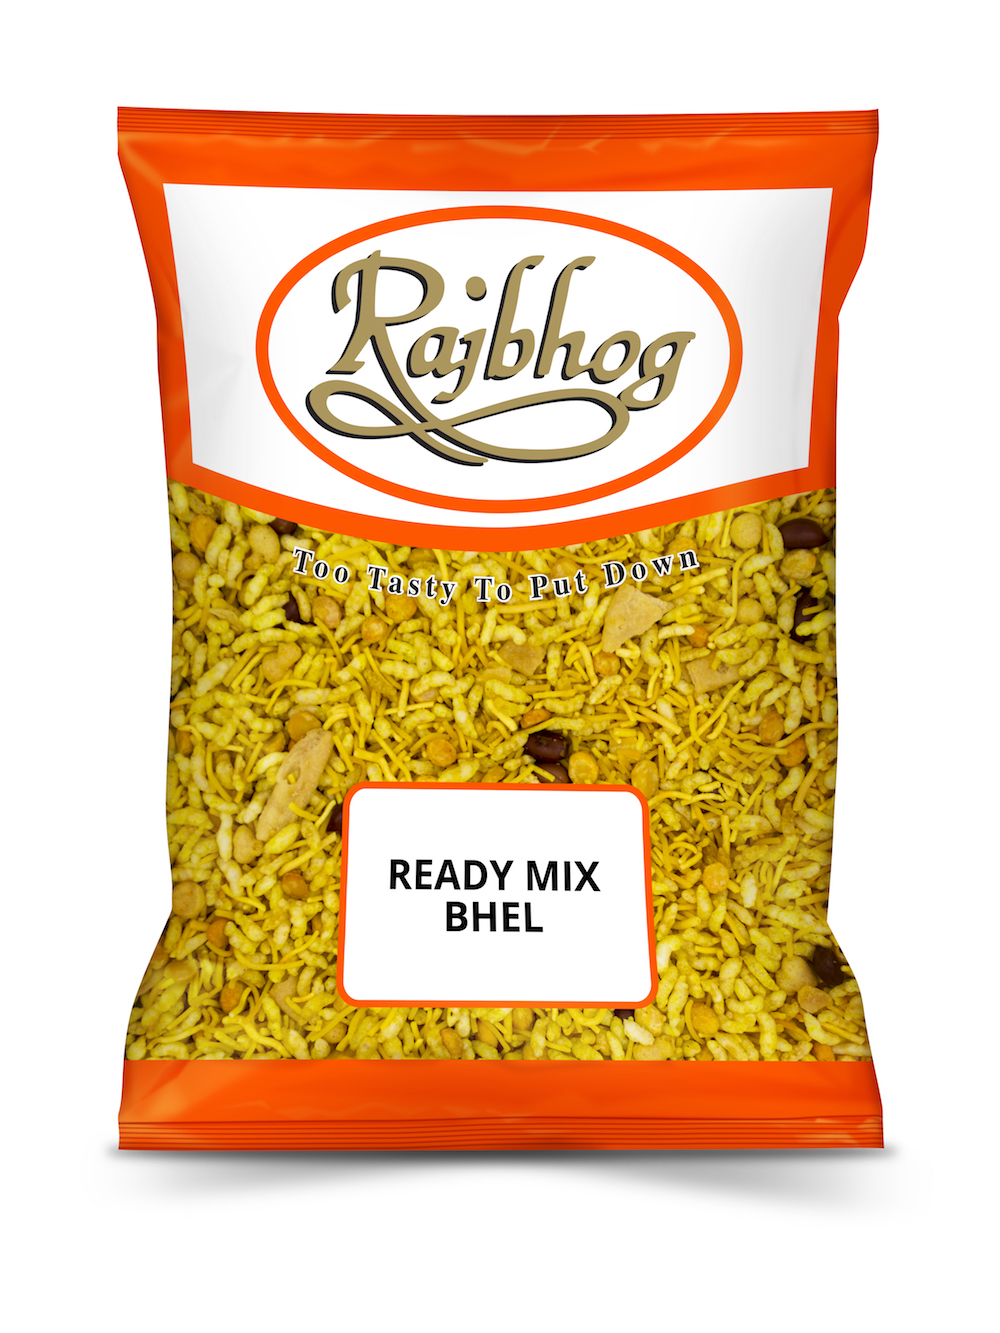 Ready Mix Bhel